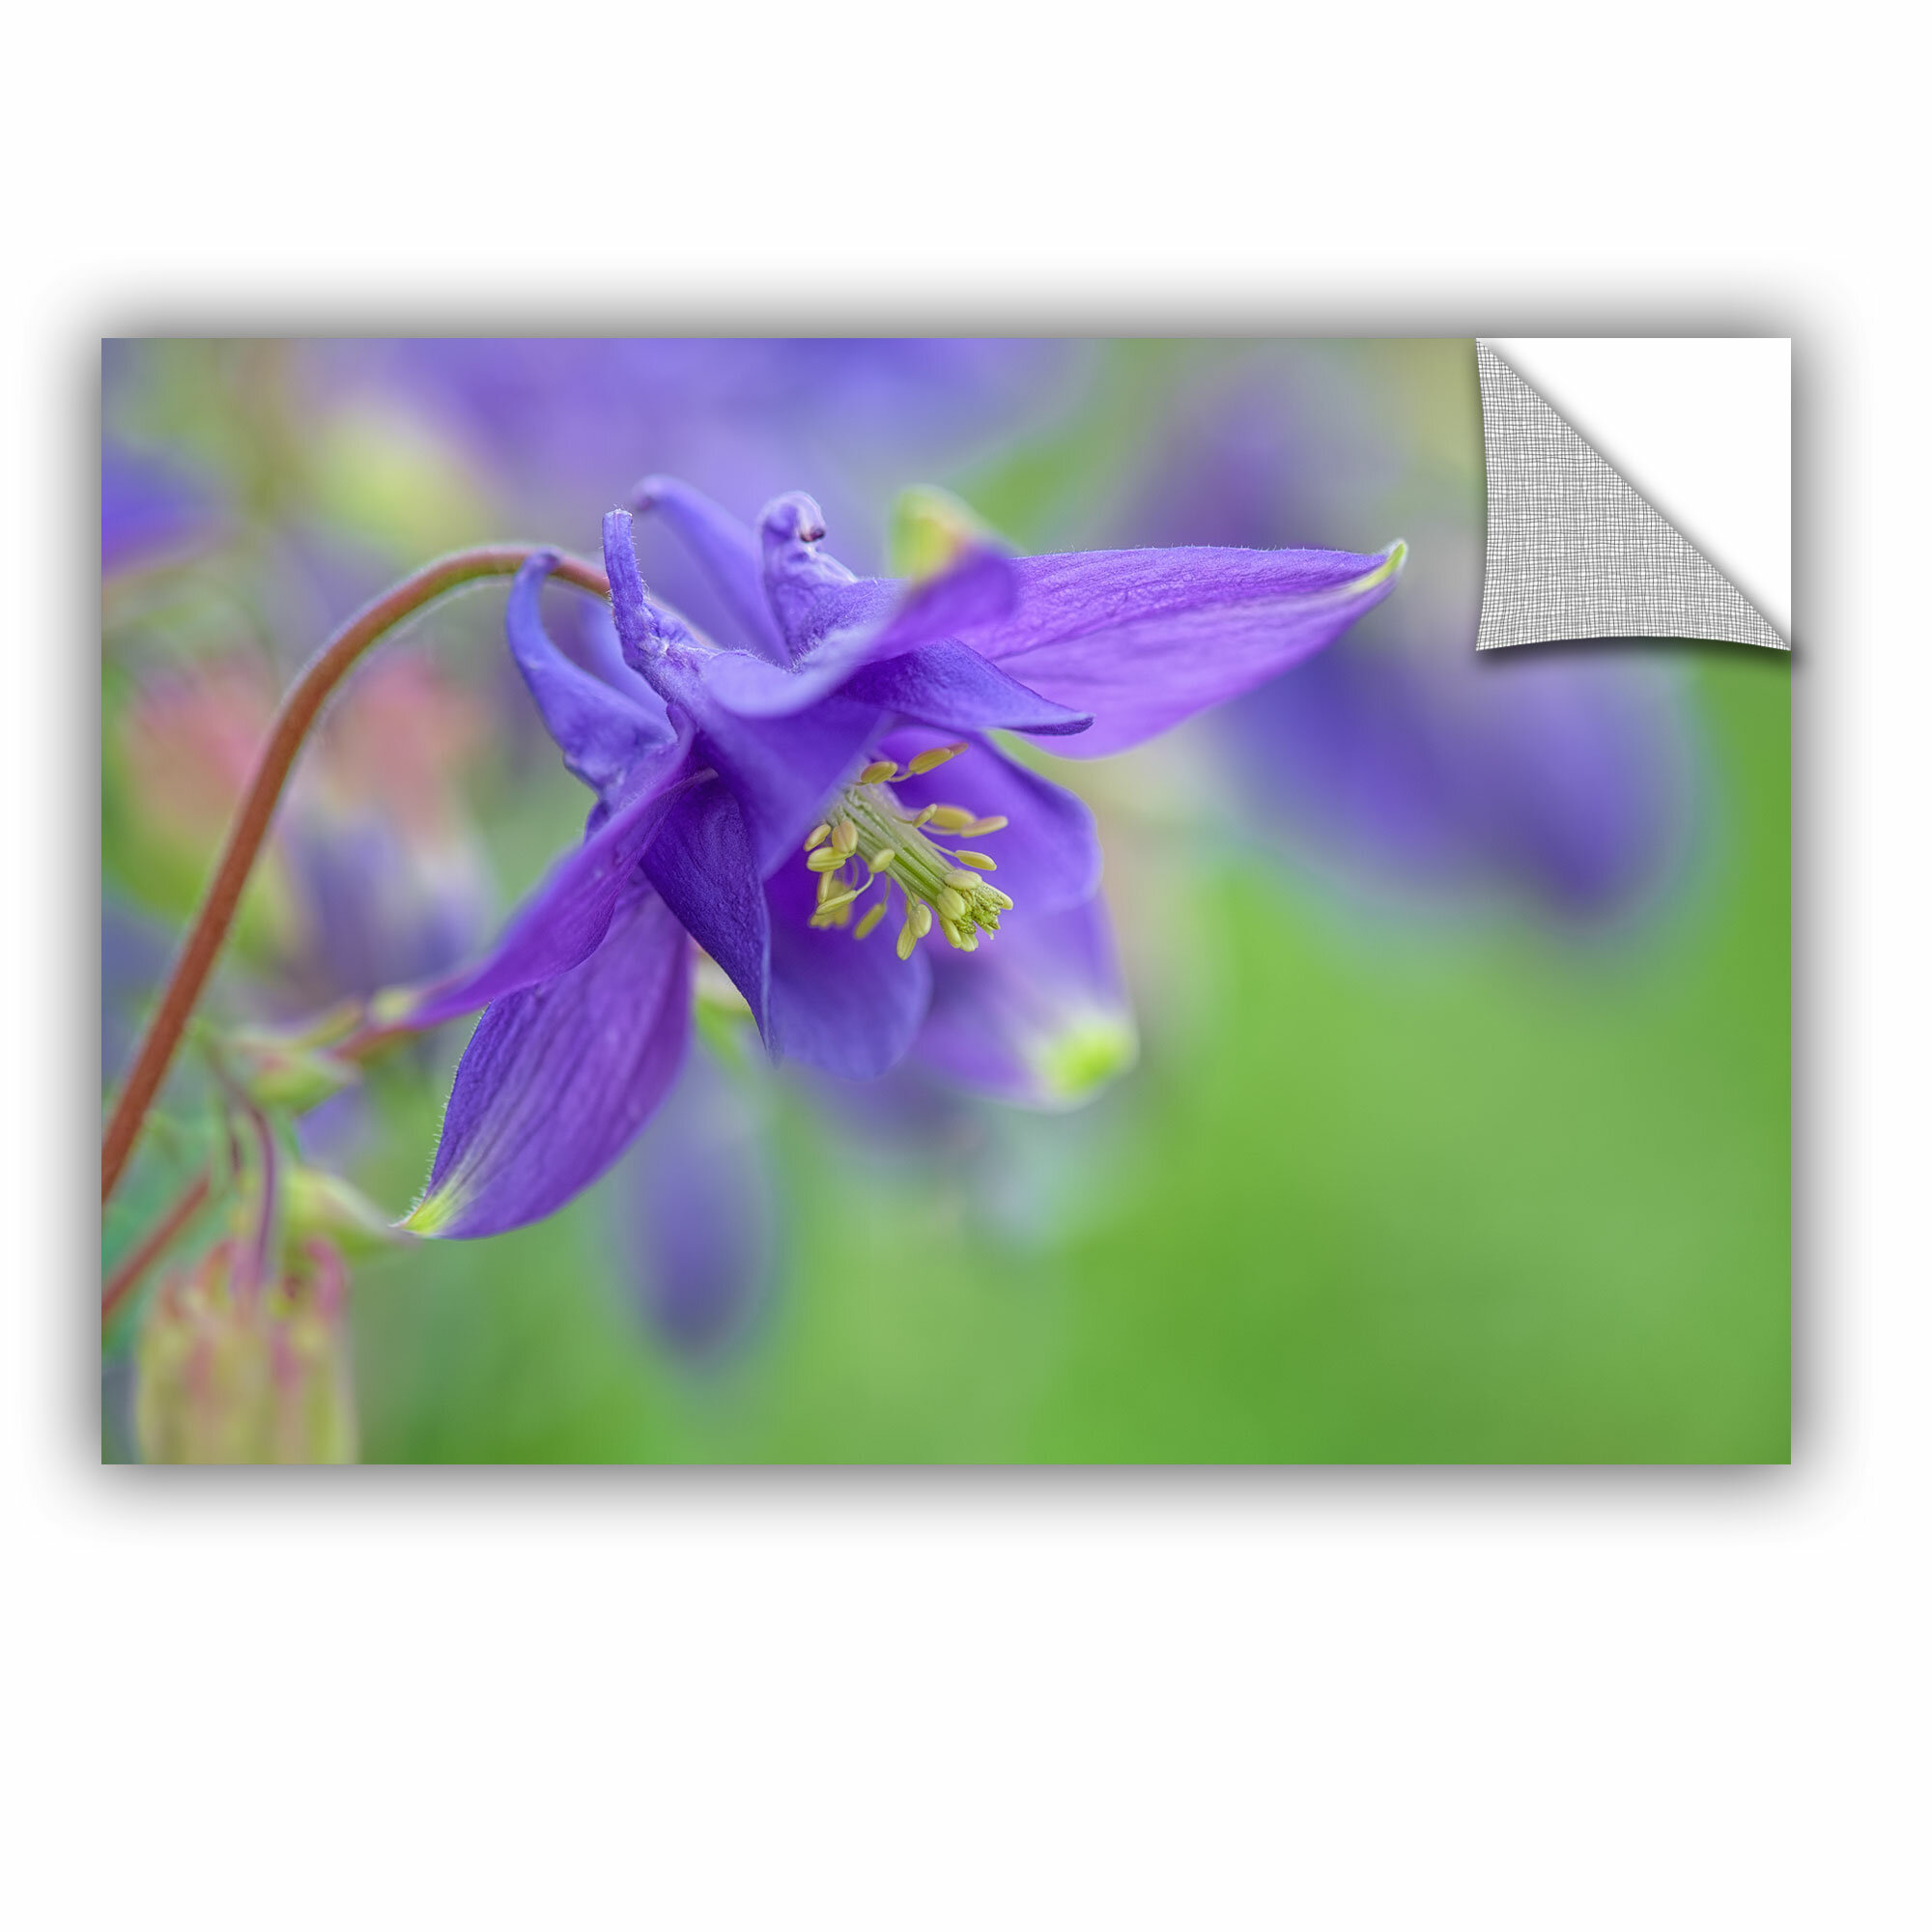 House of hampton blue columbine removable wall decal wayfair izmirmasajfo